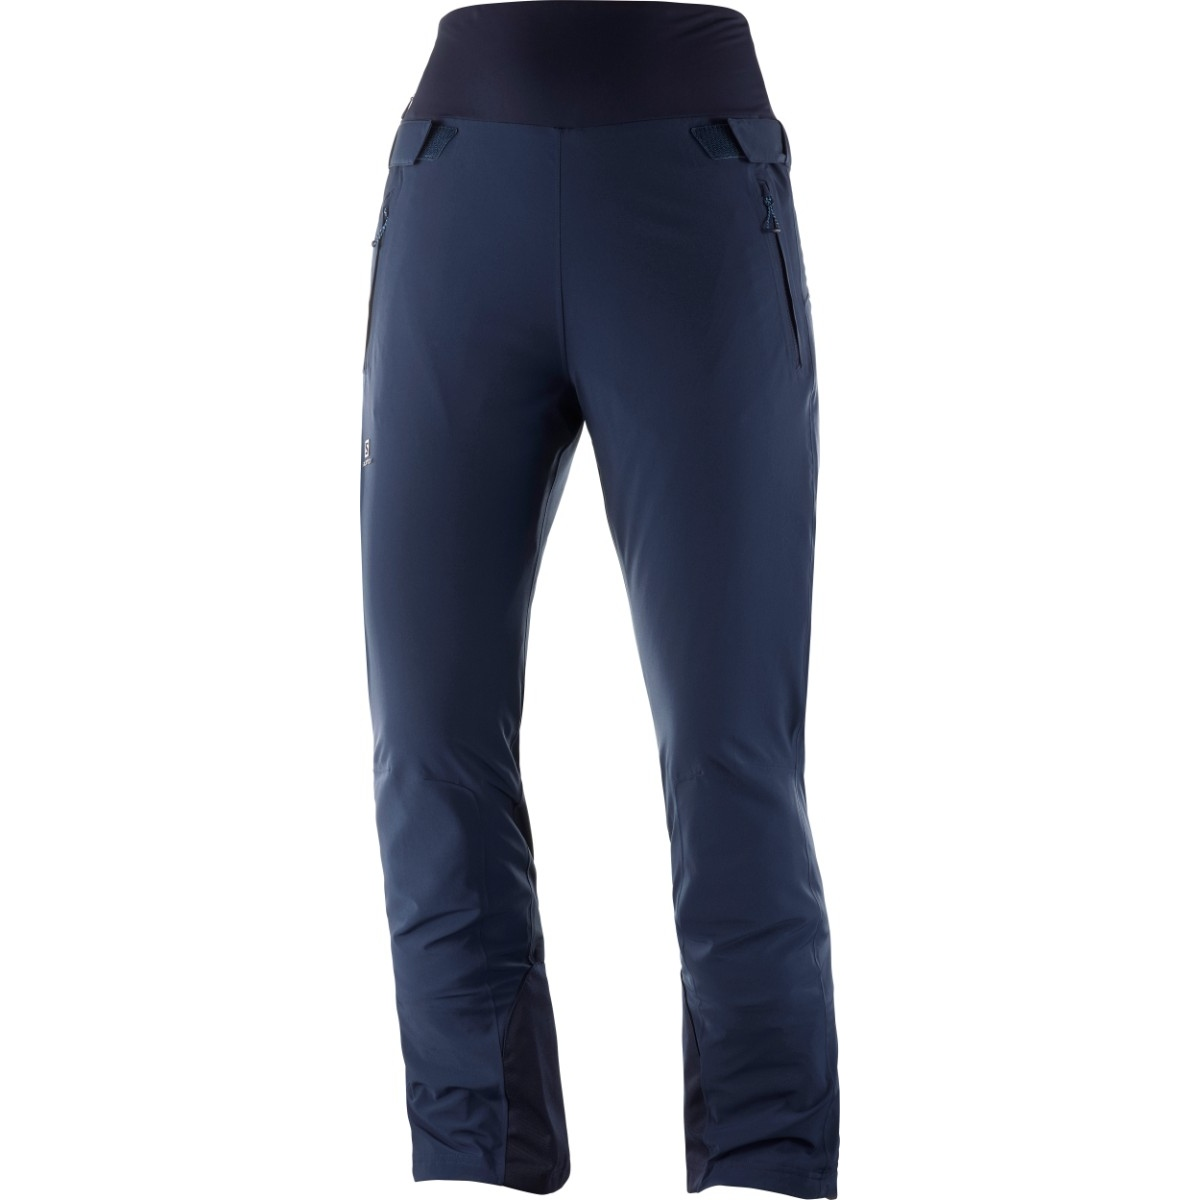 Salomon Pantaloni de ski Salomon ICEFANCY - Bleu